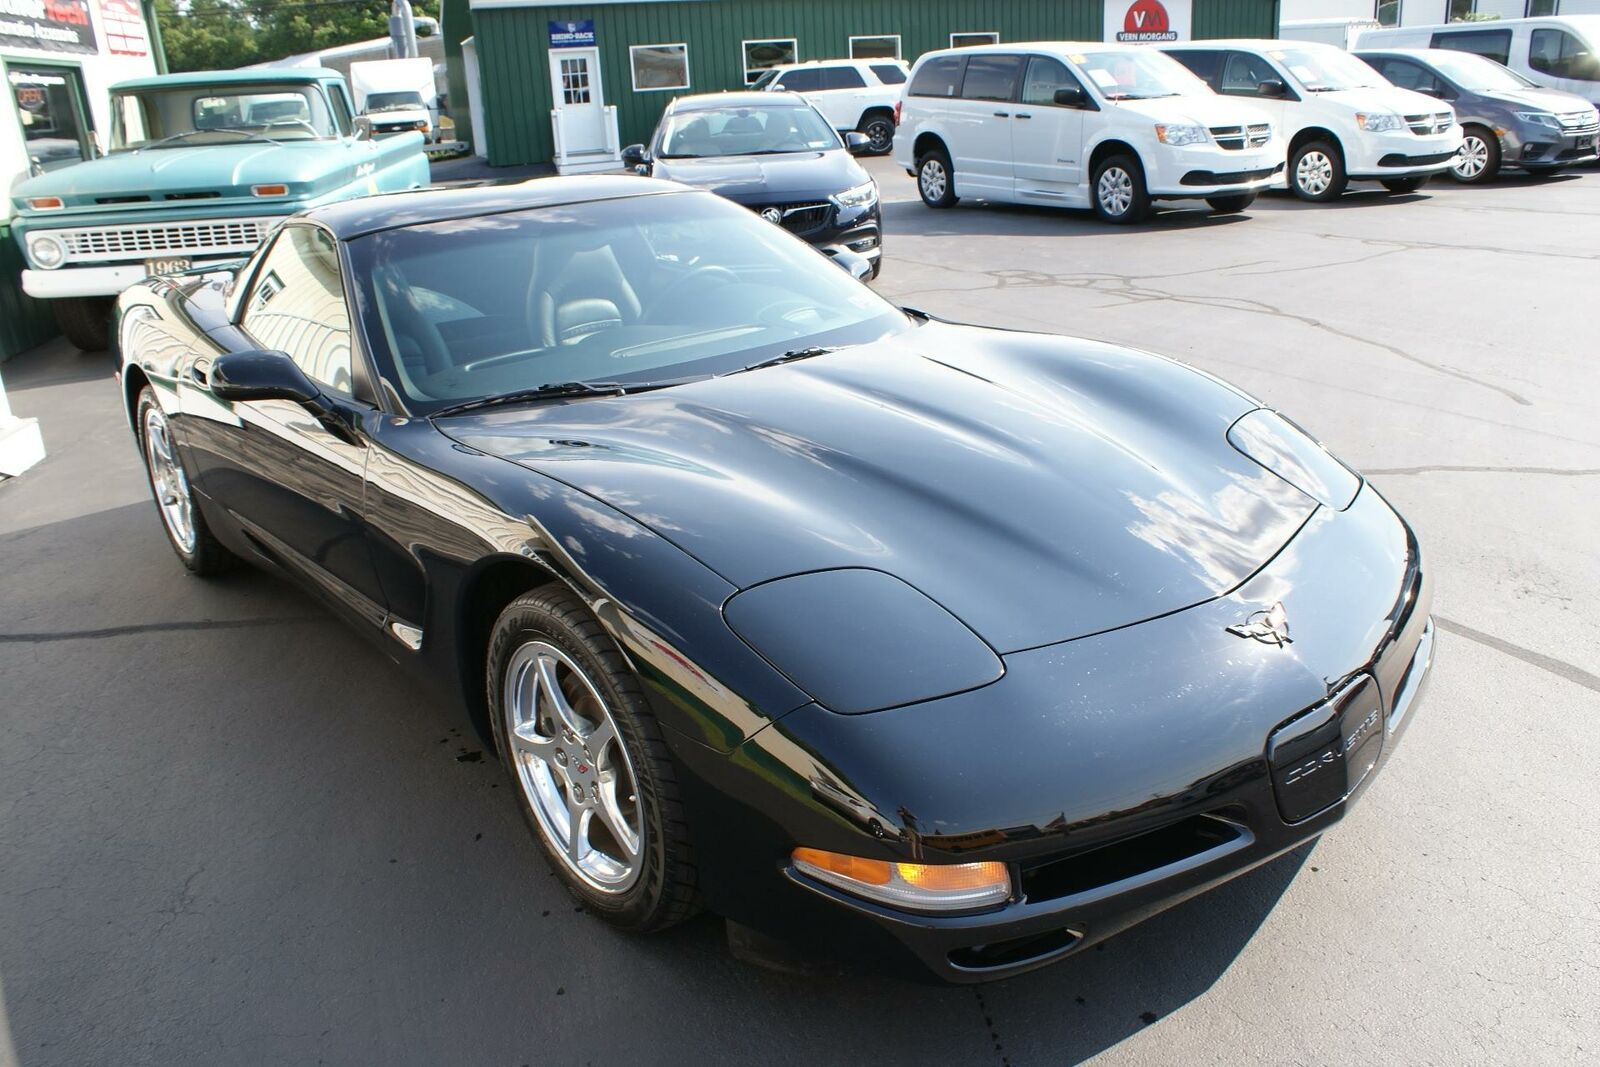 2004 Black Chevrolet Corvette   | C5 Corvette Photo 6